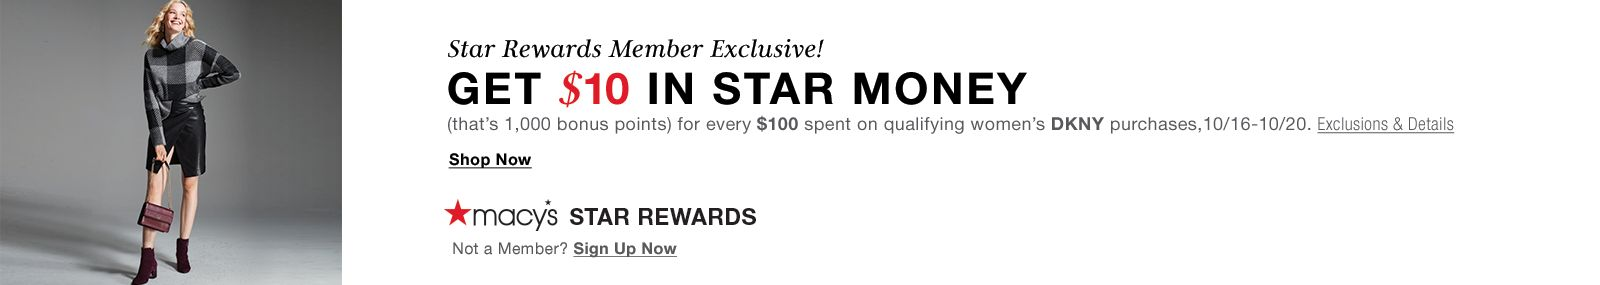 Macy's Star Rewards, Member-Exclusive Offer!